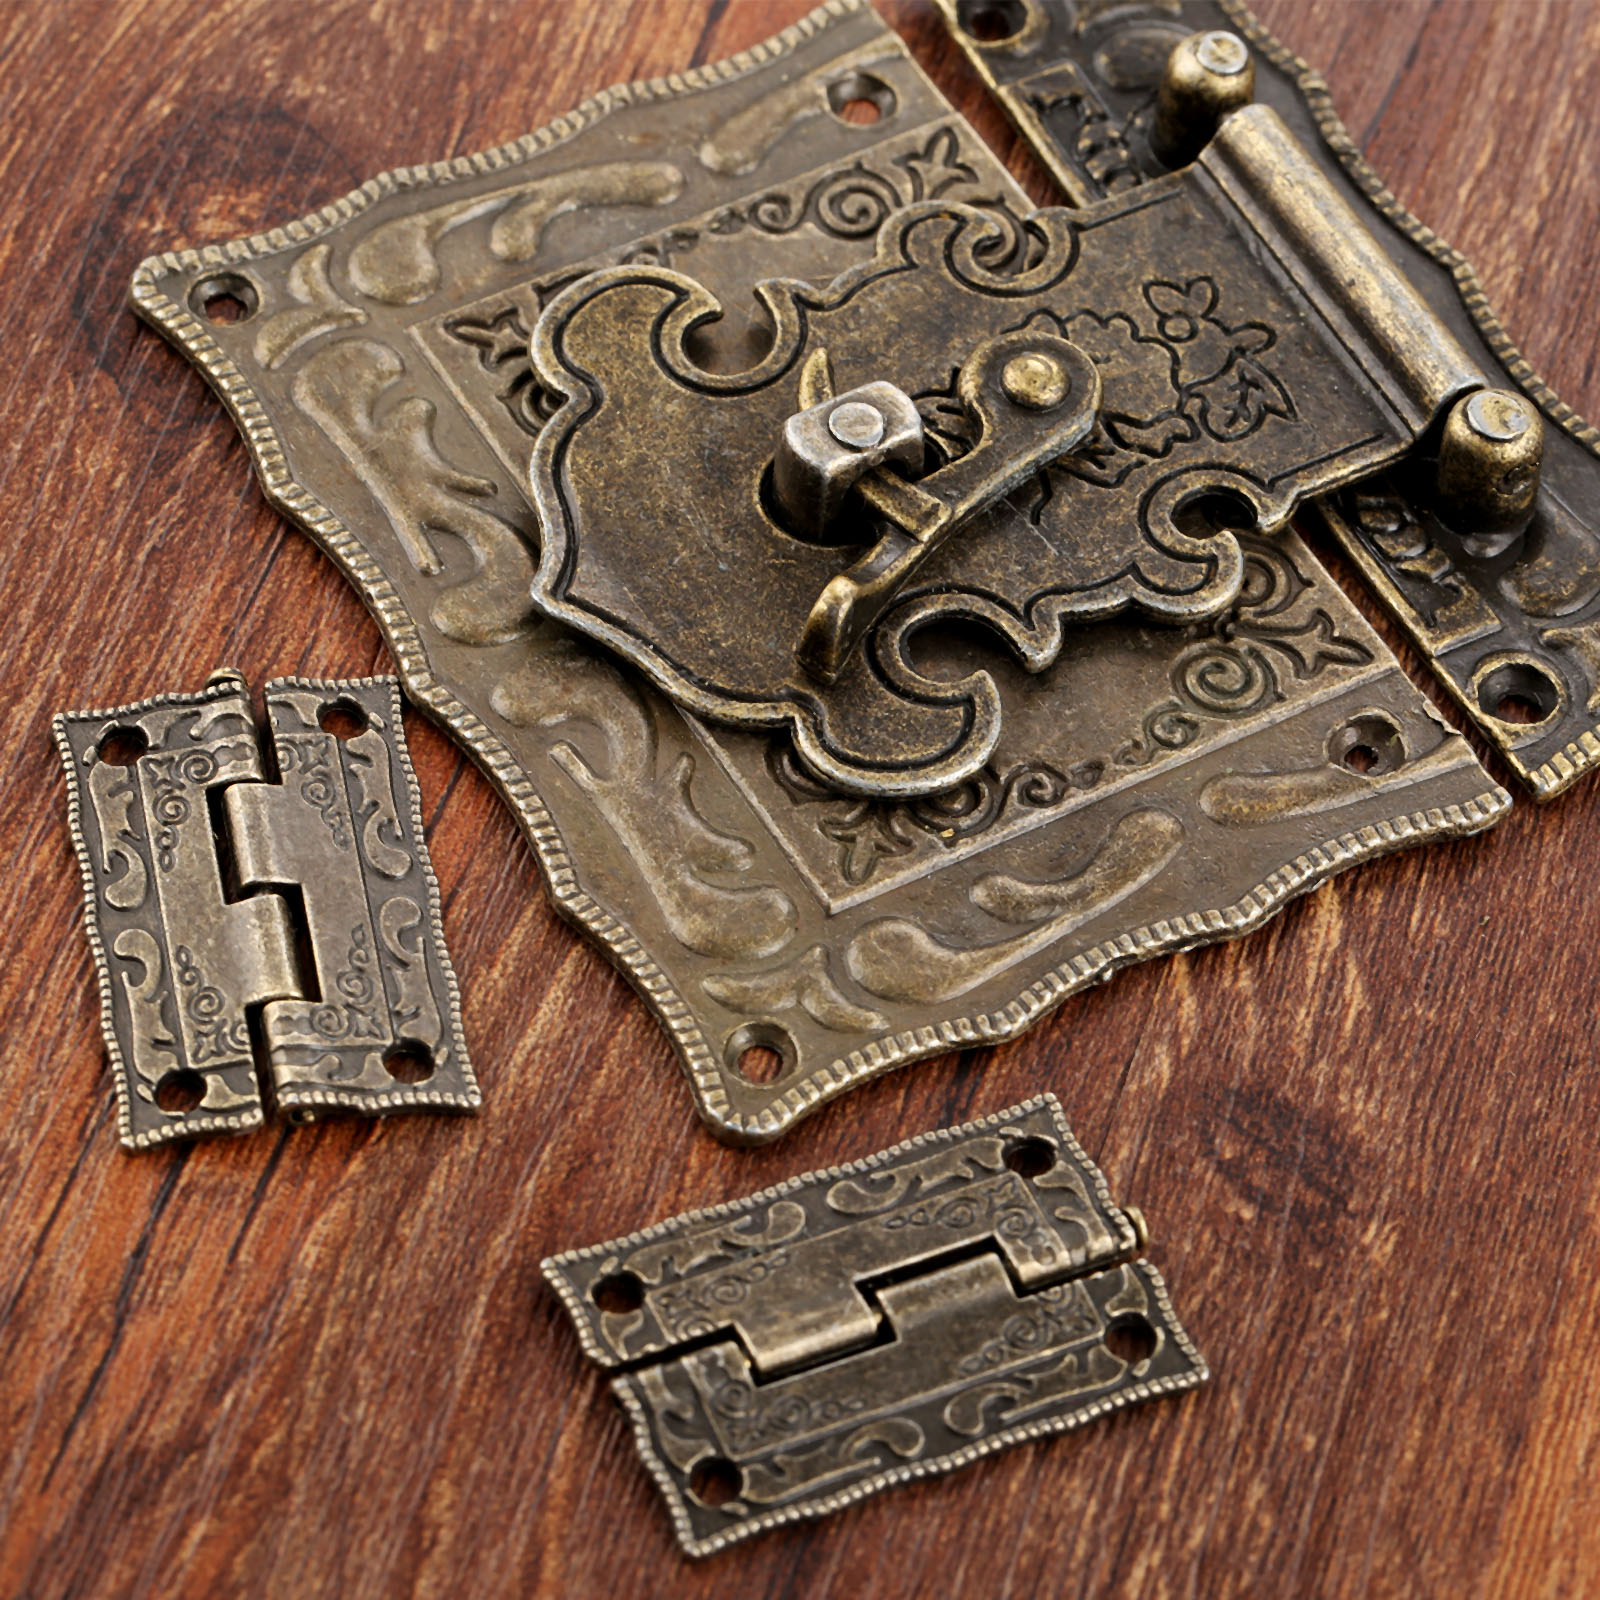 2Pcs Antique Bronze Cabinet Hinges Vintage Furniture Hardware Set + Box Hasp Latch Toggle Buckle For Jewelry Wooden Case